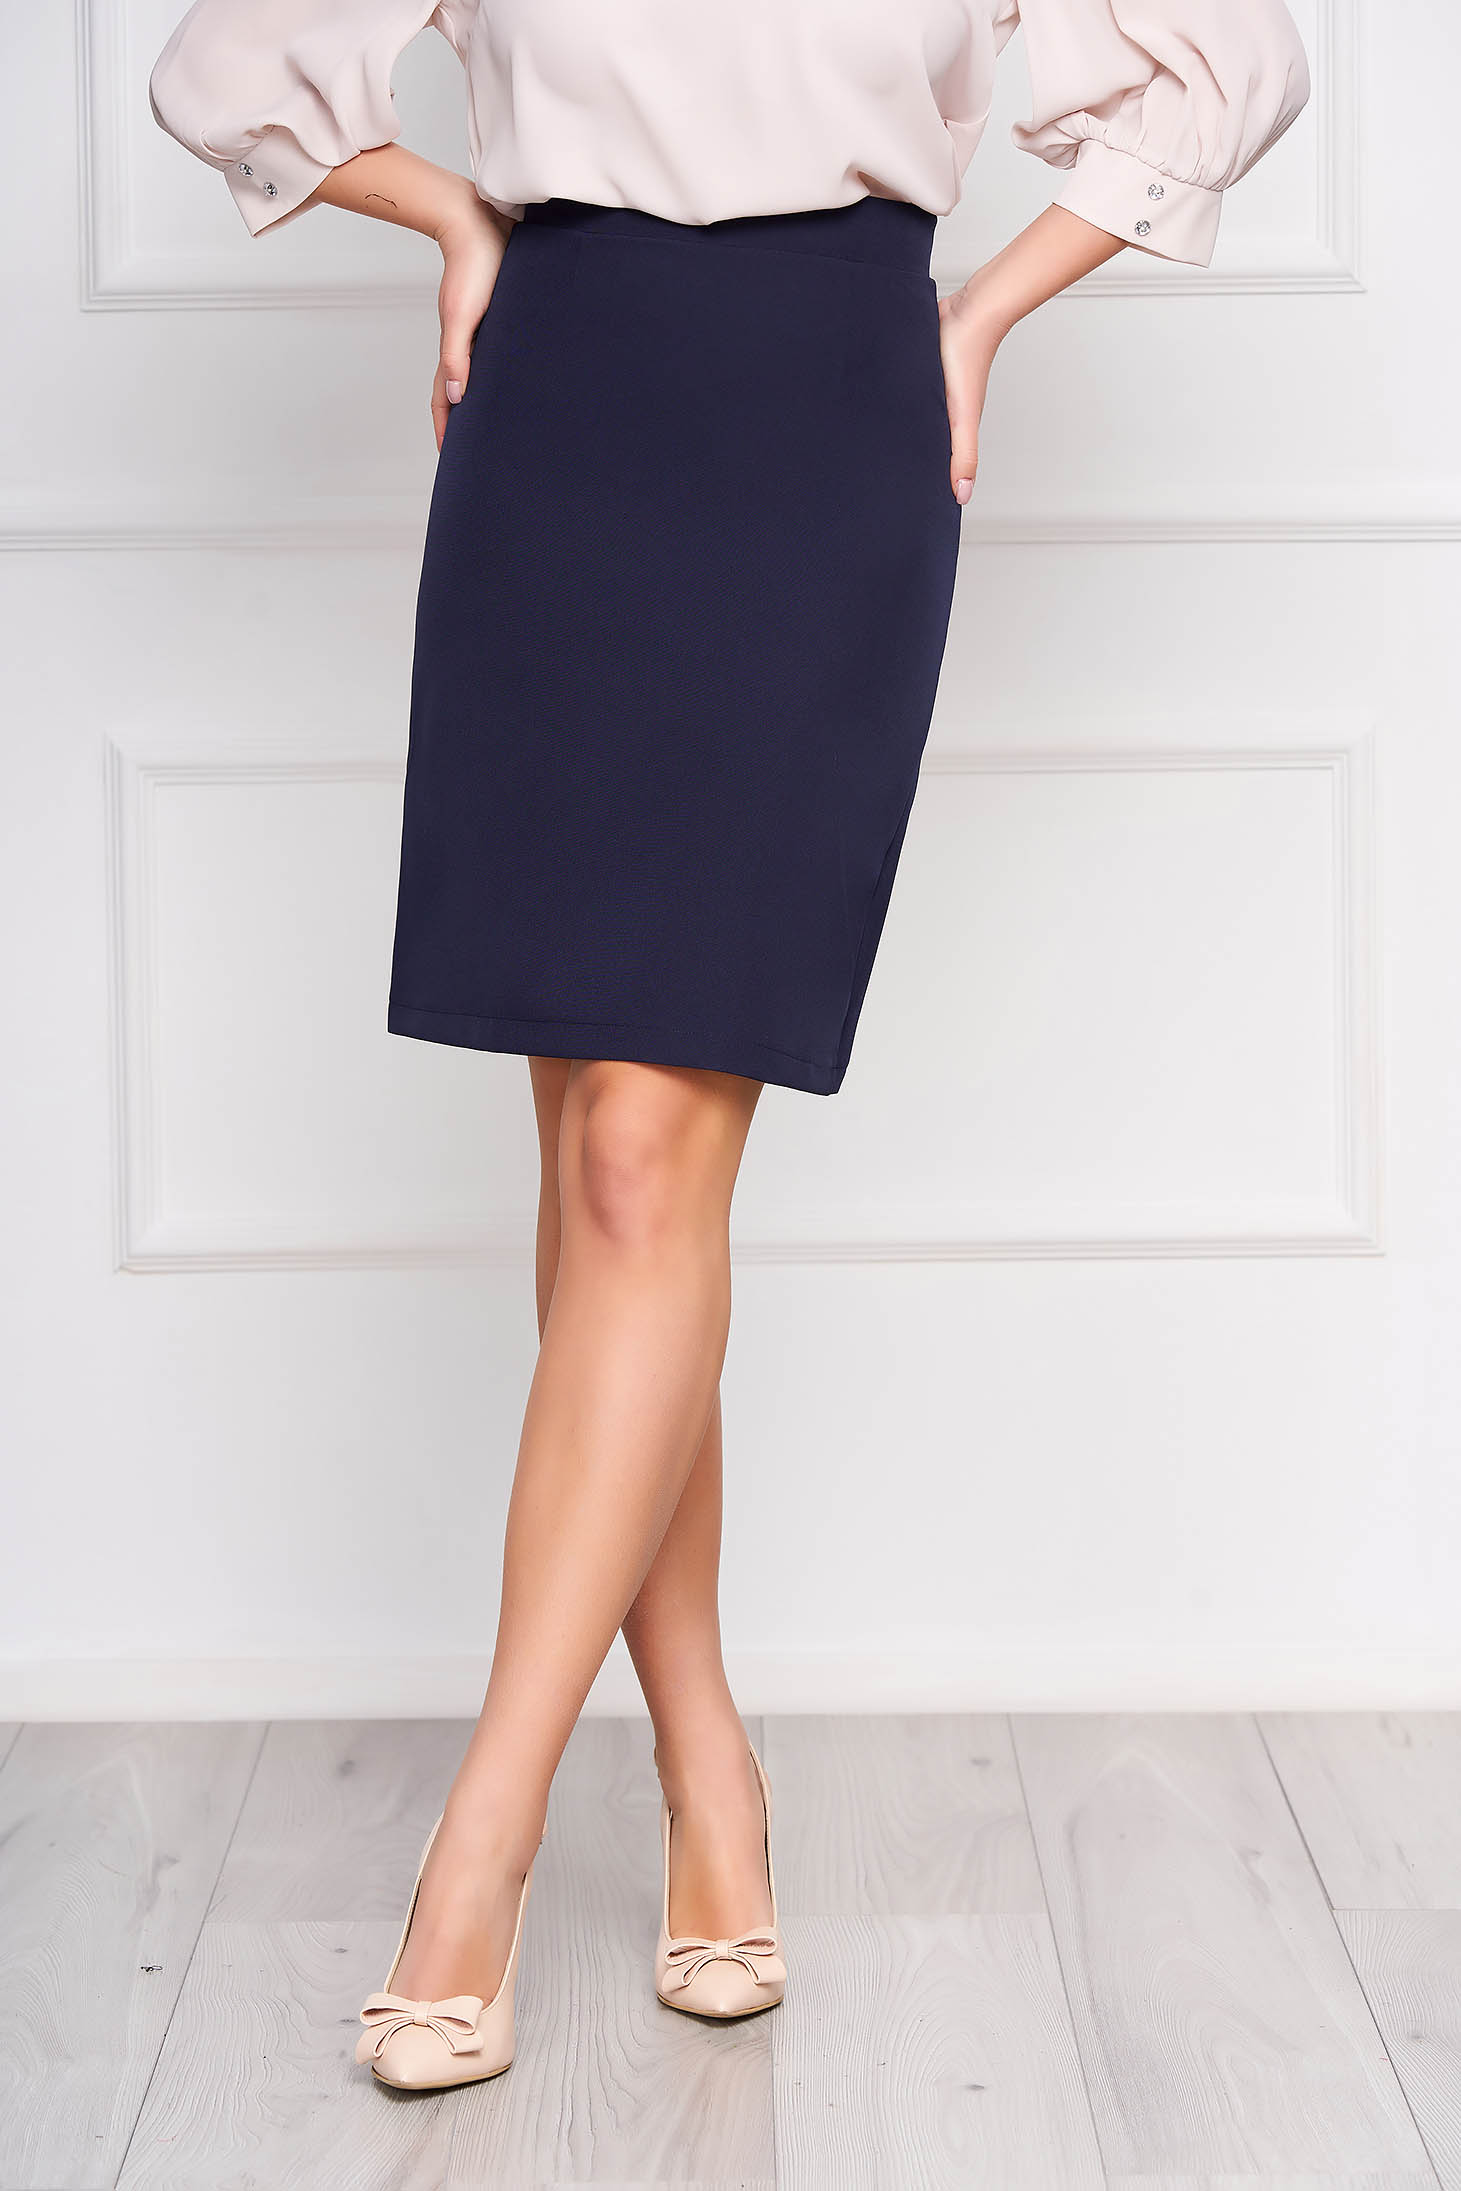 StarShinerS darkblue office skirt straight high waisted slightly elastic fabric with inside lining